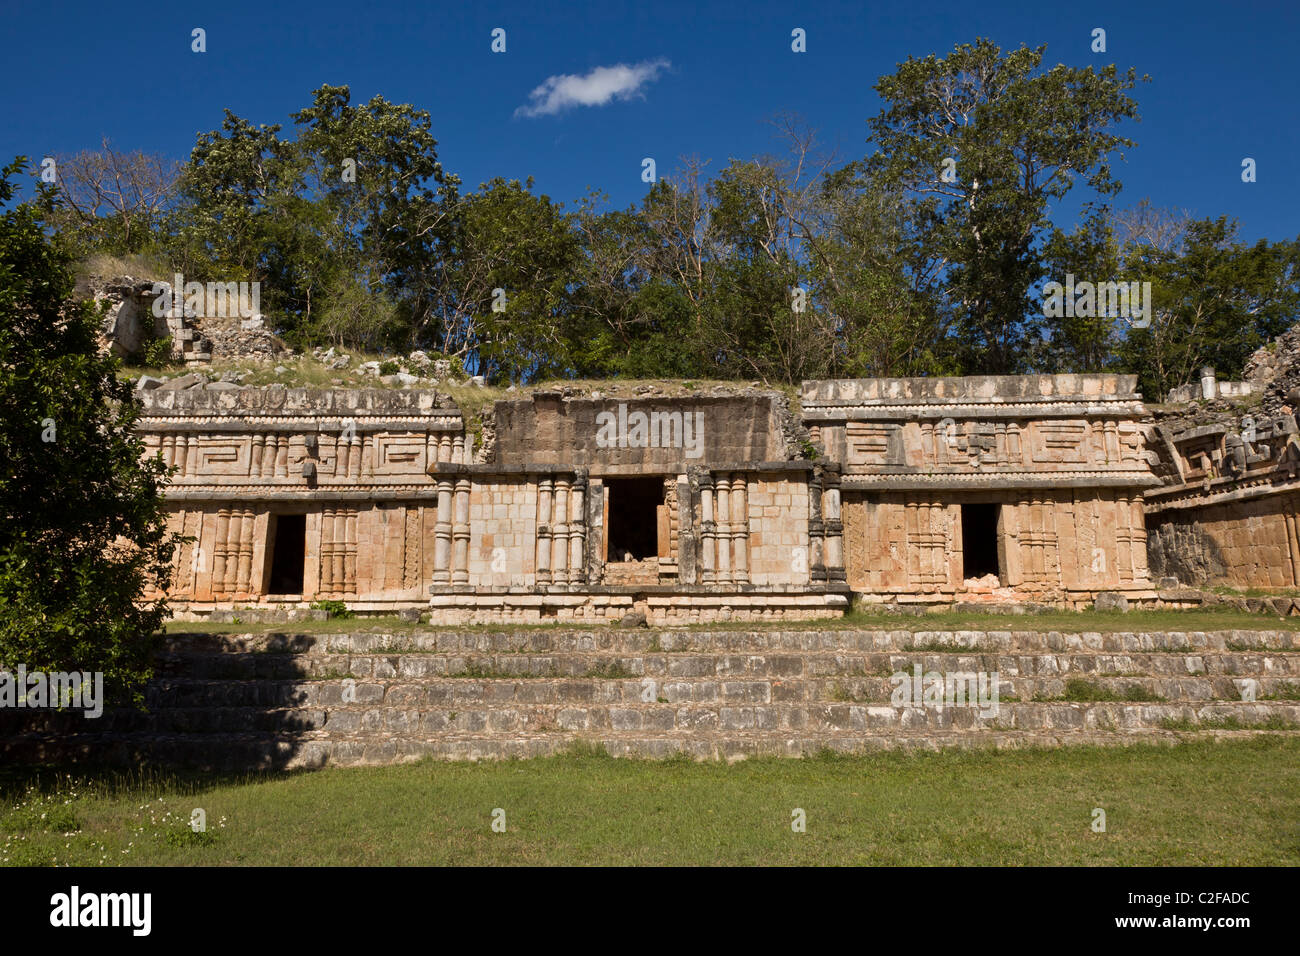 Ornate facade of The Palace (El Palacio) at the Maya ruins of Labna along the Puuc Route in the Yucatan Peninsula, - Stock Image